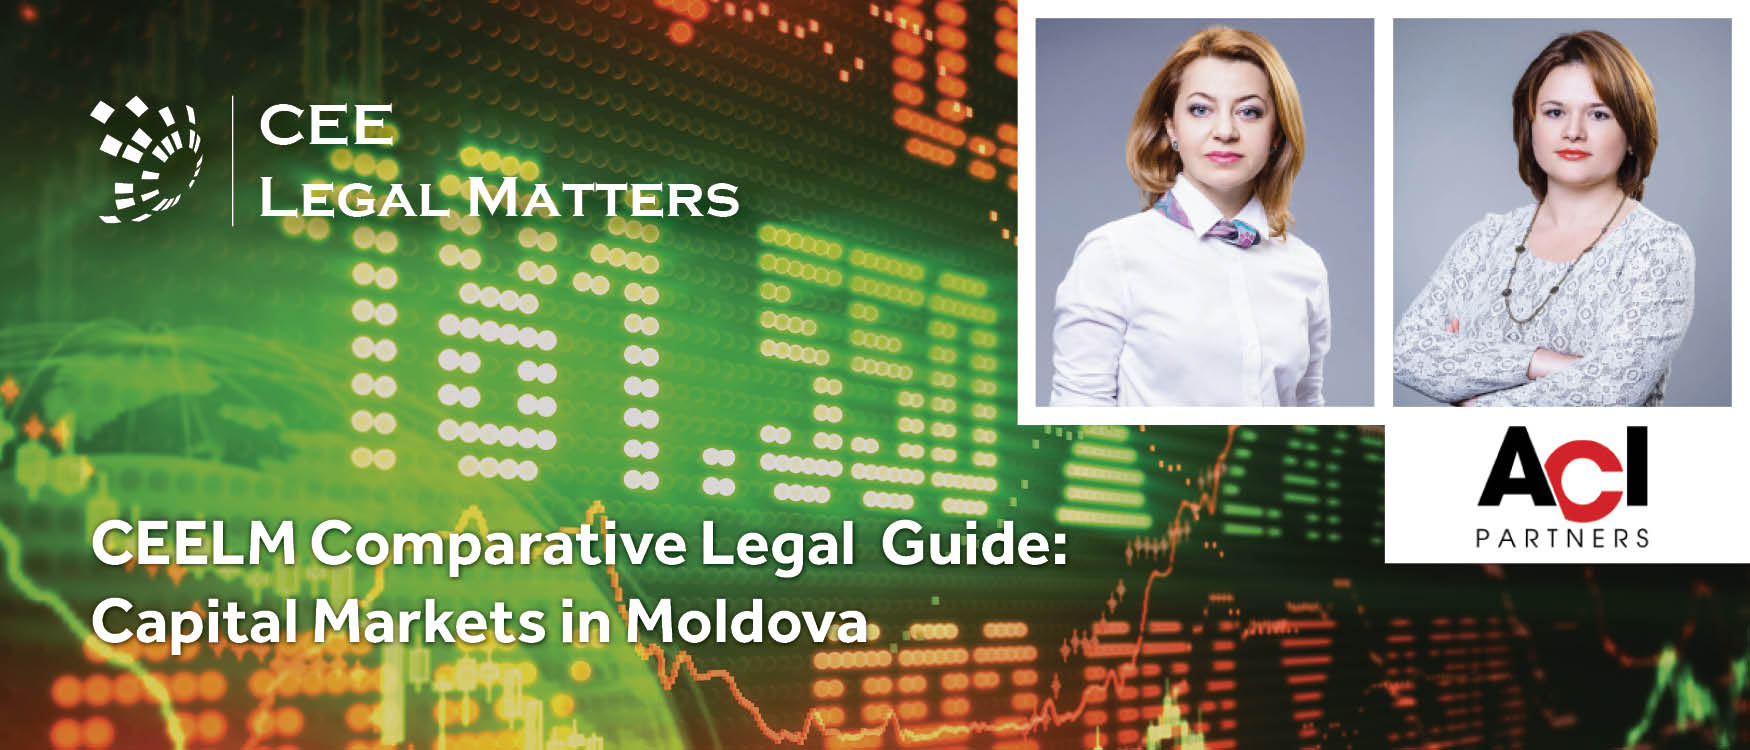 Capital Markets in Moldova